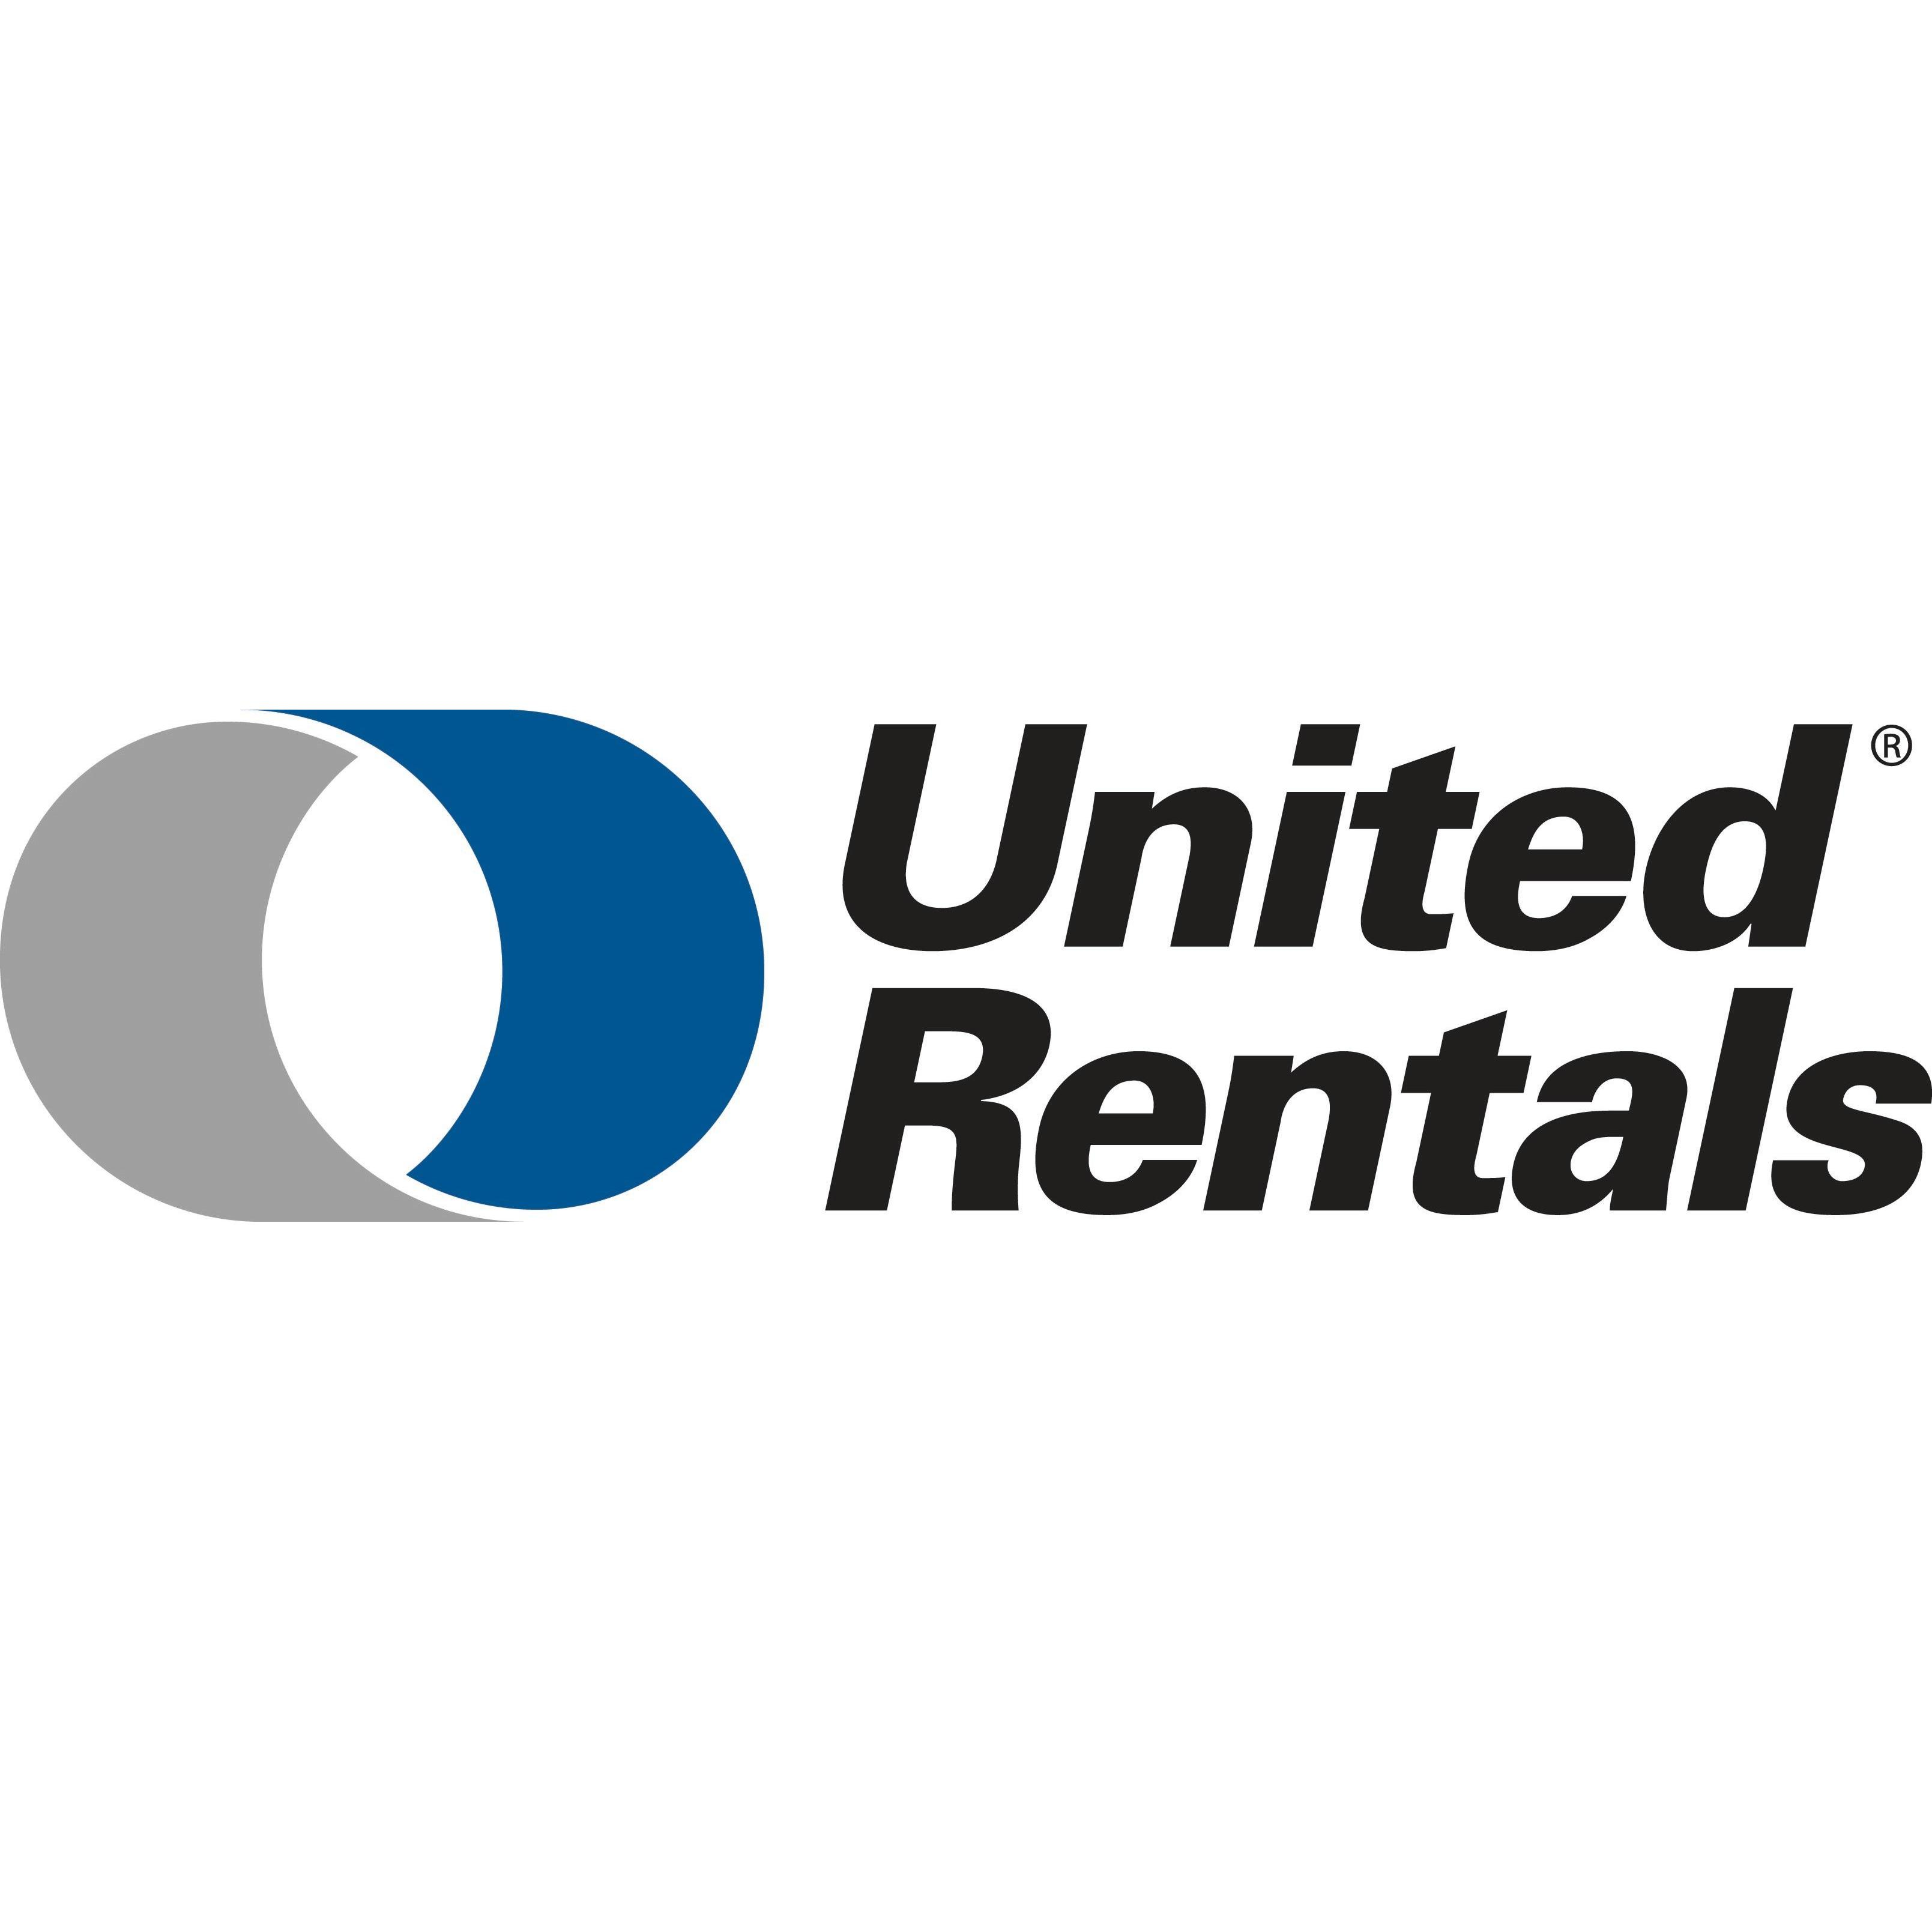 United Rentals - Fluid Solutions: Pumps, Tanks, Filtration - Hyattsville, MD 20781 - (410)600-3264 | ShowMeLocal.com